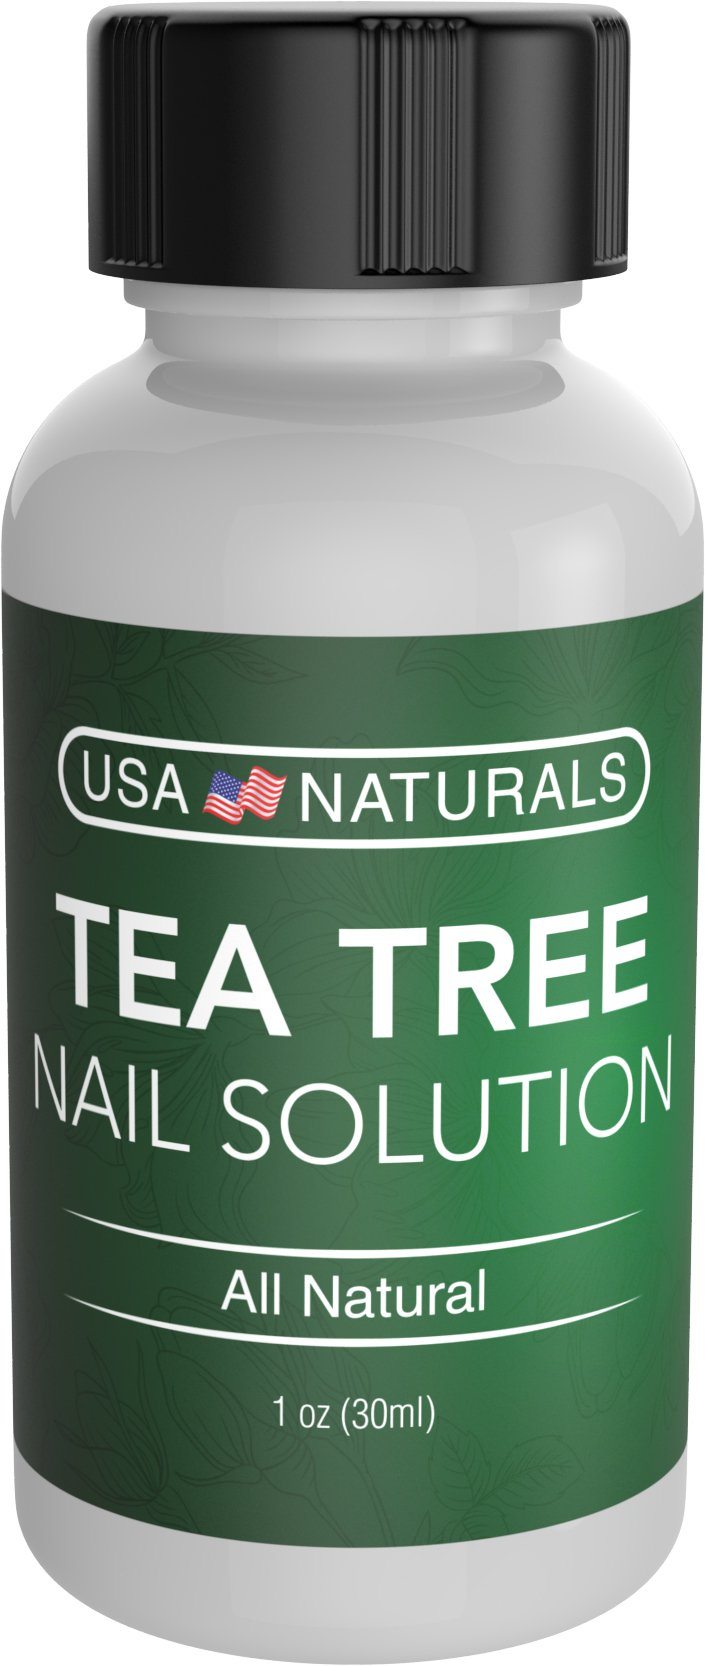 Tea Tree Oil Toenail Fungus Treatment - Anti Fungal Nail Treatment-Effective Toenail & Finger Nail Solution with Naturally-Sourced Ingredients Helps Renew Fingernails Toenails (Tea Tree Nail Solution)